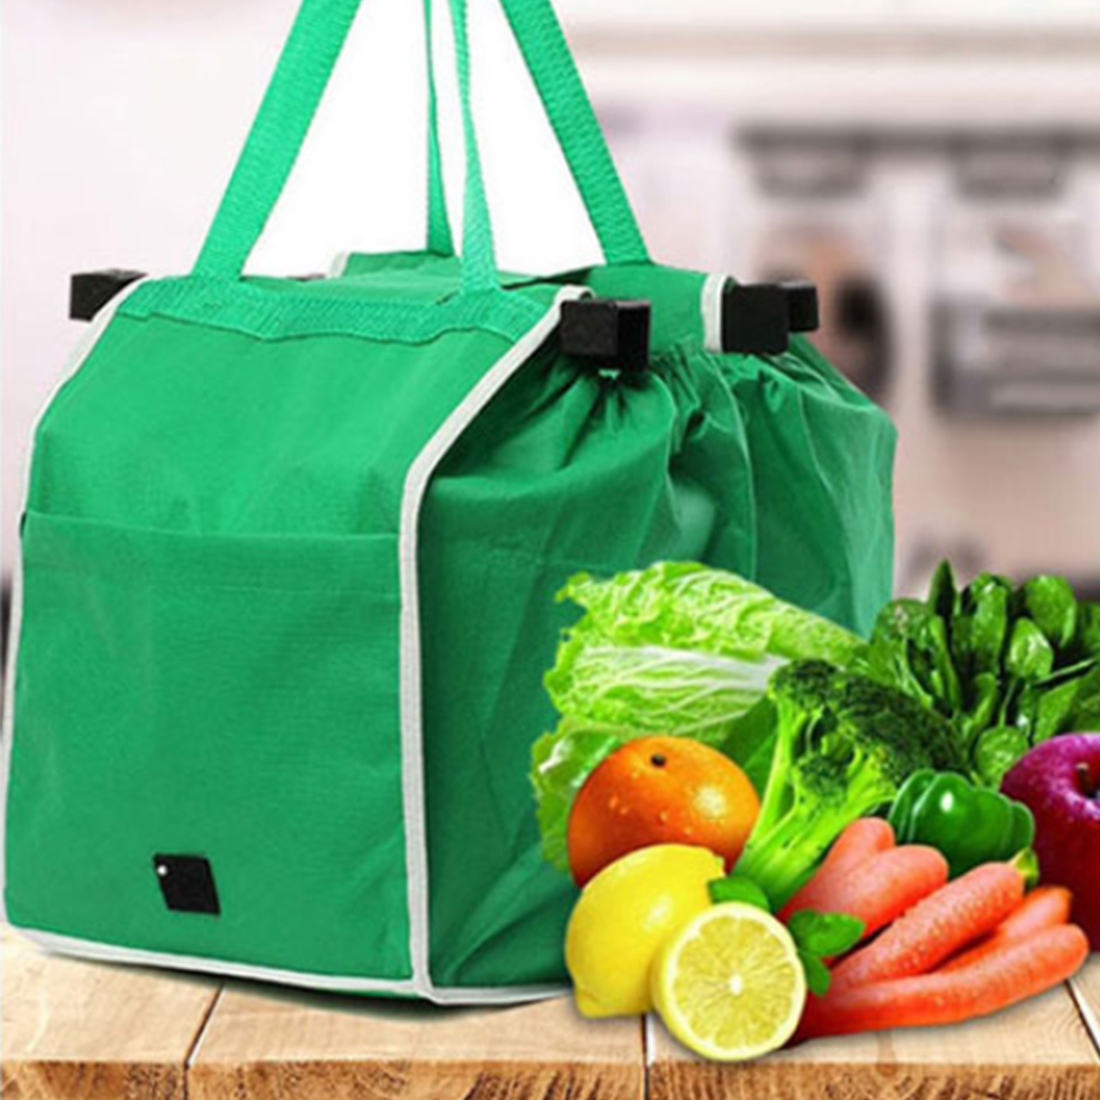 Top Sale UK Bags Foldable Tote Handbag Reusable Trolley Clip To Cart Grocery Shopping Bags